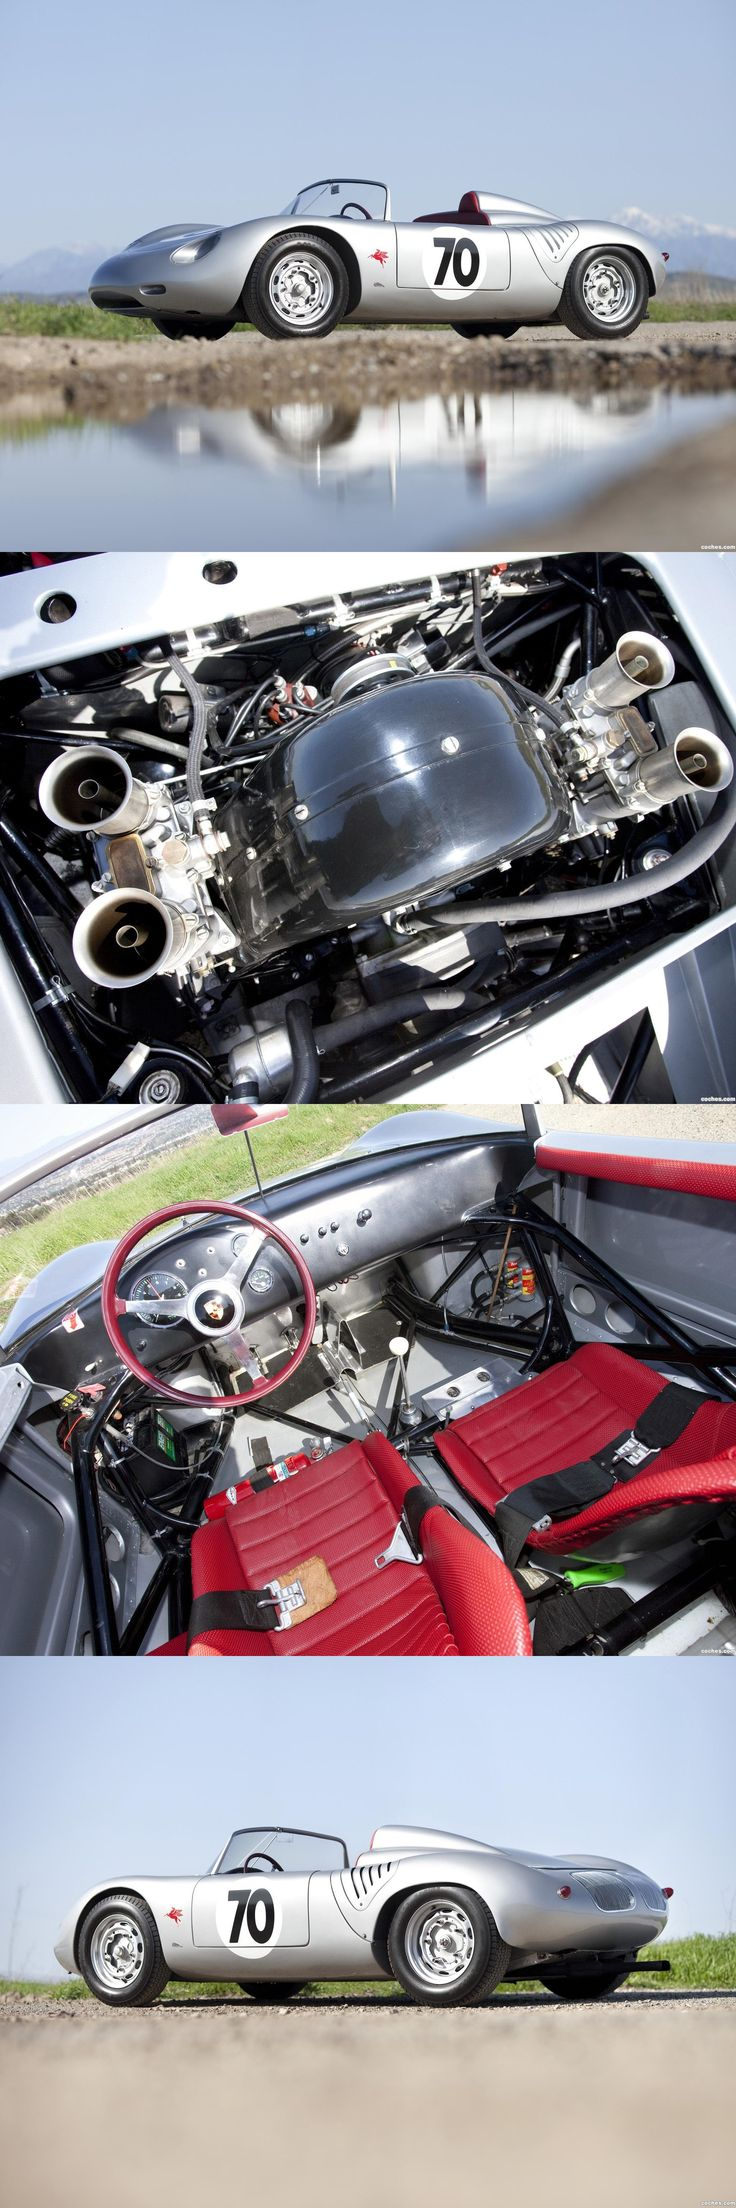 3 Porsche 718 RS61 Spyders competed in the 1961 Le Mans race , entered by Porsche System engineering . No.30 DNF>engine .. No.32 driven by Herrmann / Barth finished 7th o/a .. No.33 driven by Holbert / Gregory , finished 5th o/a & 1st in 2Ltr. class .